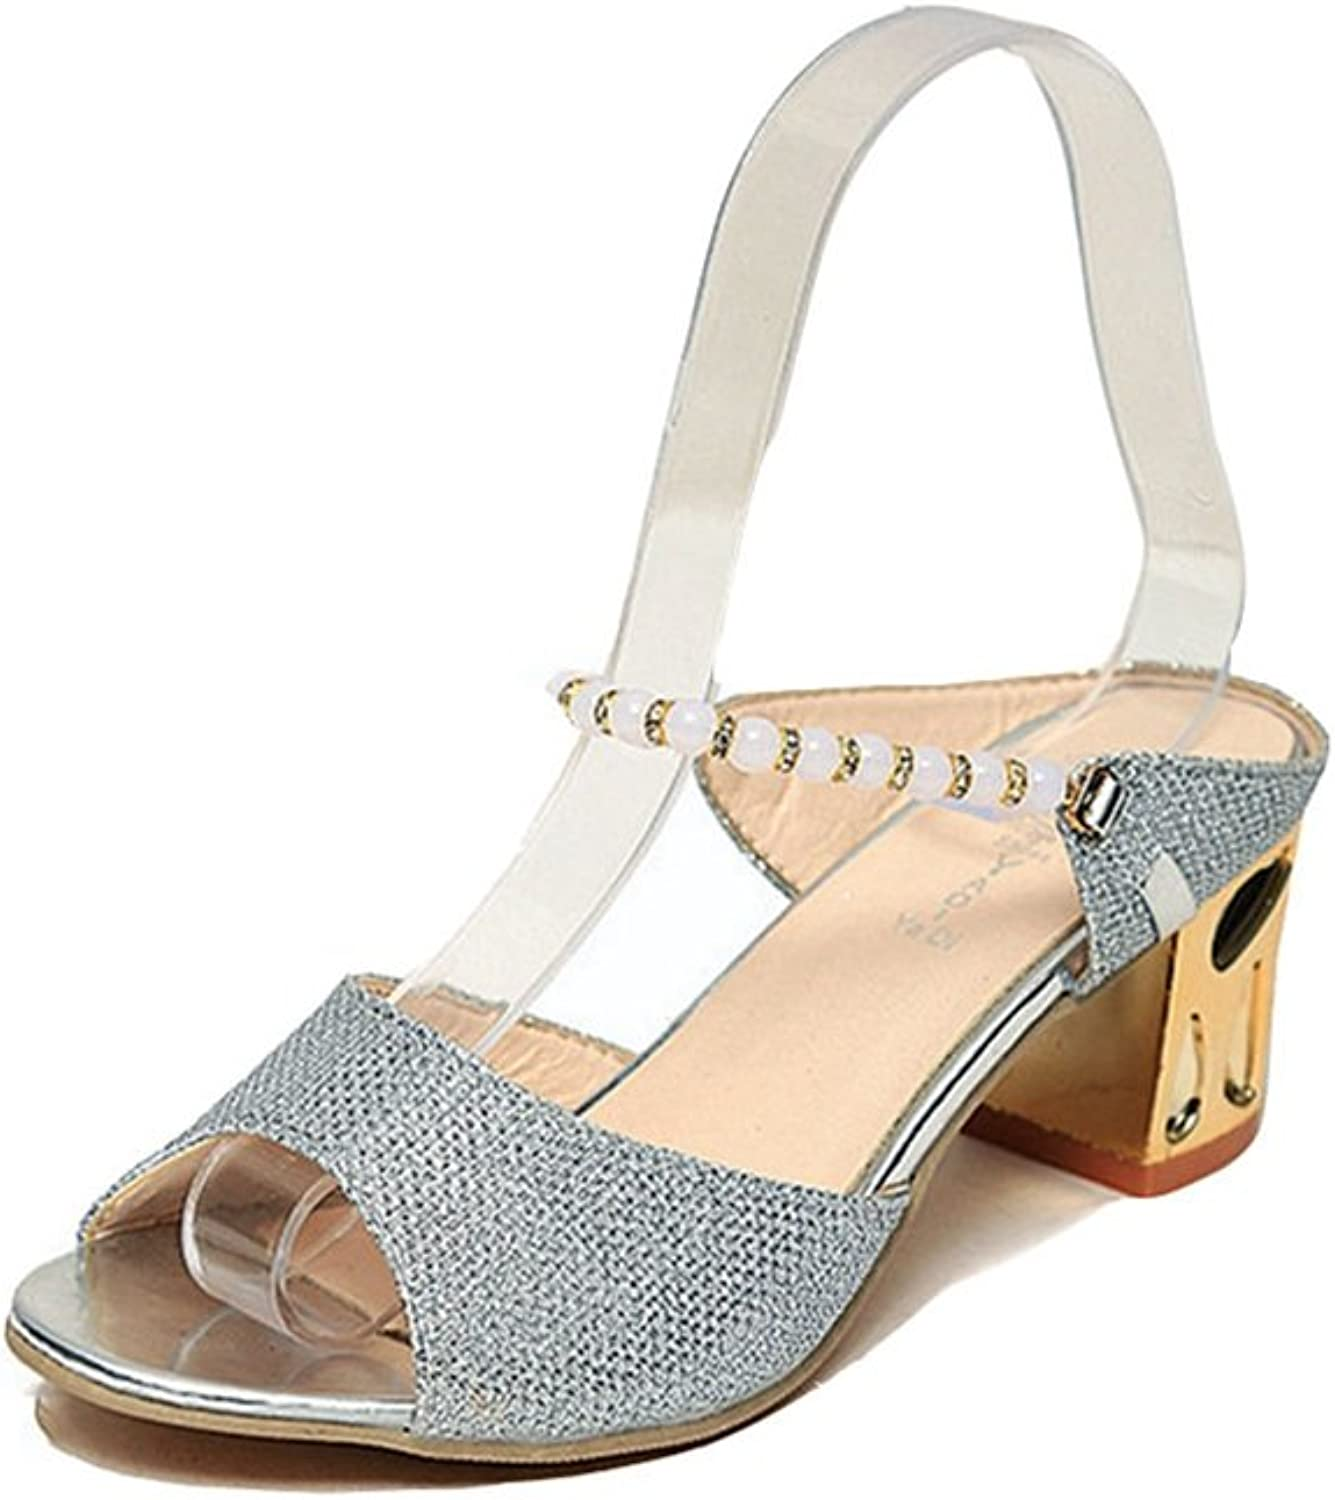 T-JULY Ladies Sparkle Glitter Heels Pearl Chains Peep Toe Sandals for Women Ankle Strap Sexy Slip On Dressy Pumps shoes